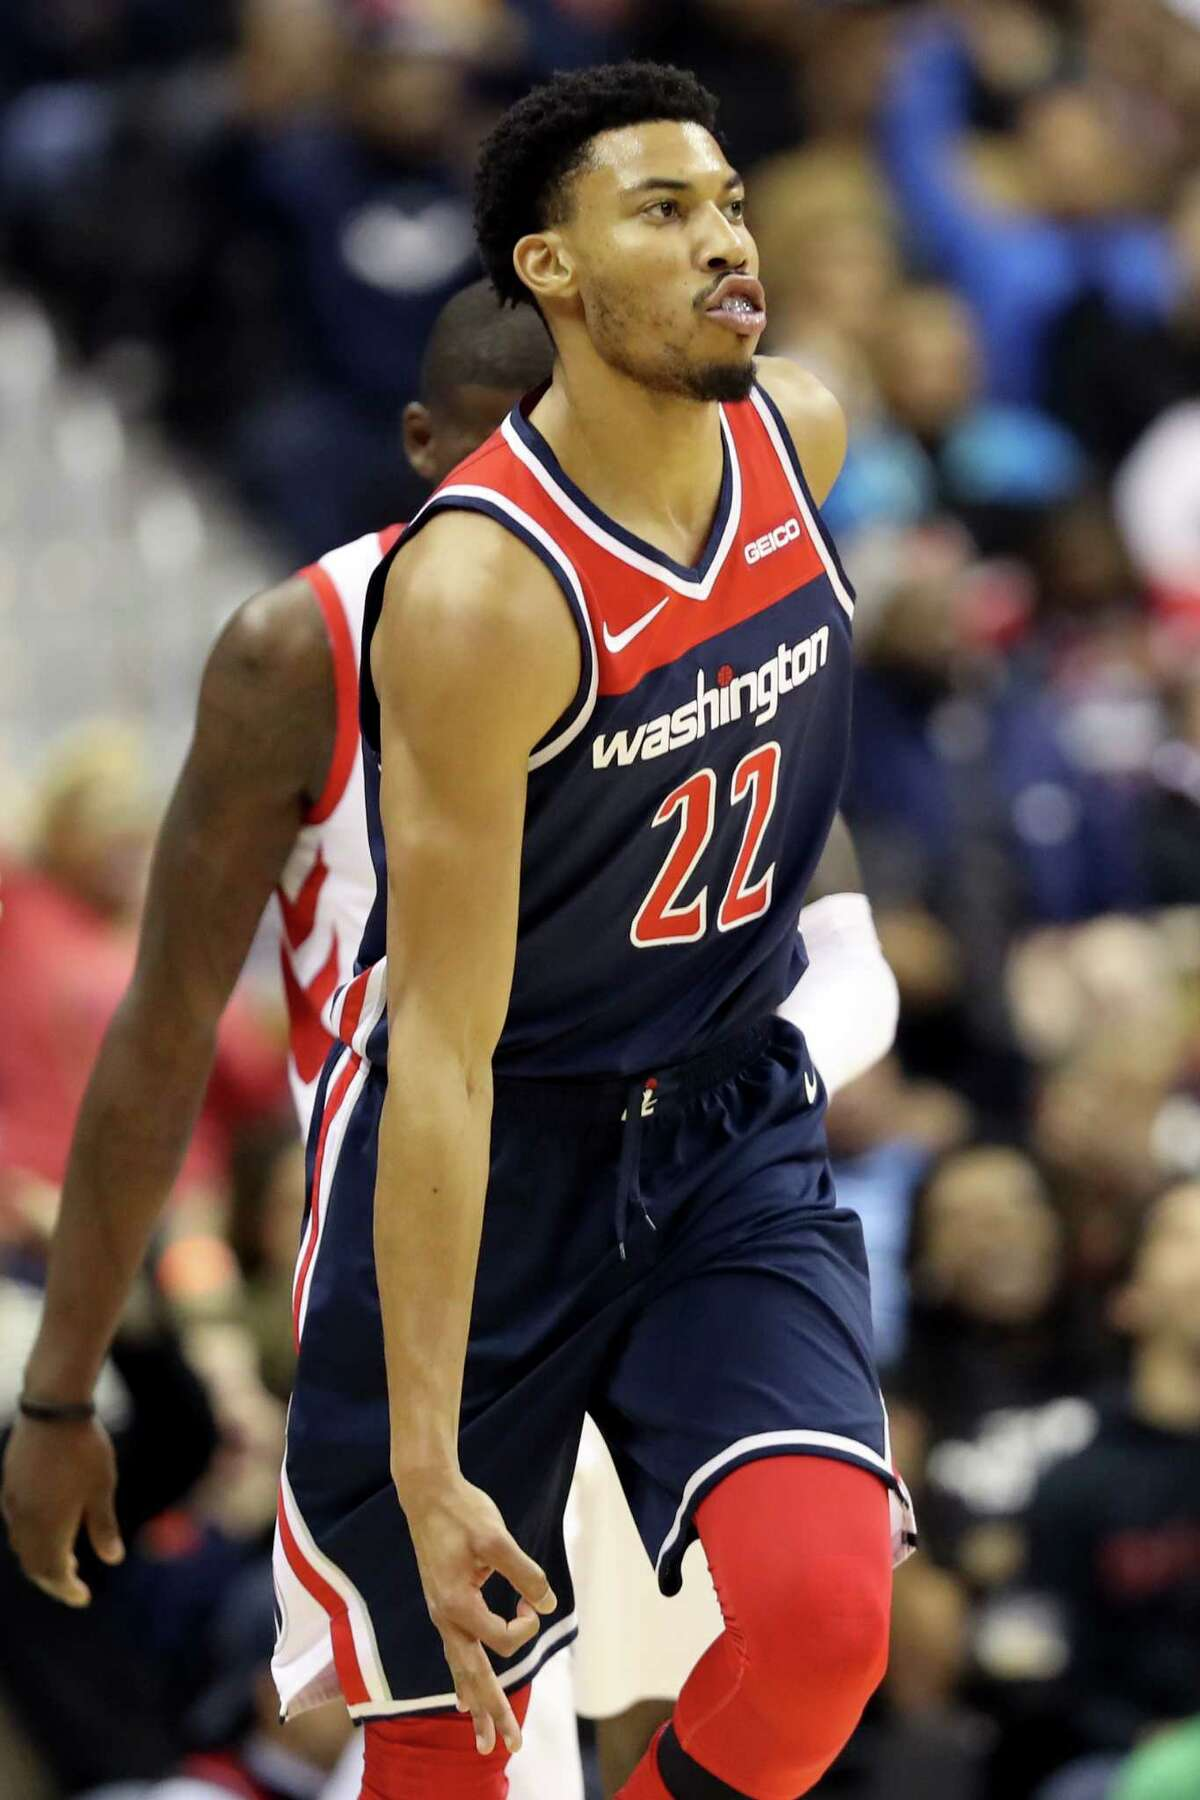 WASHINGTON, DC - NOVEMBER 26: Otto Porter Jr. #22 of the Washington Wizards celebrates after hitting a three pointer in the first half against the Houston Rockets at Capital One Arena on November 26, 2018 in Washington, DC. NOTE TO USER: User expressly acknowledges and agrees that, by downloading and or using this photograph, User is consenting to the terms and conditions of the Getty Images License Agreement.